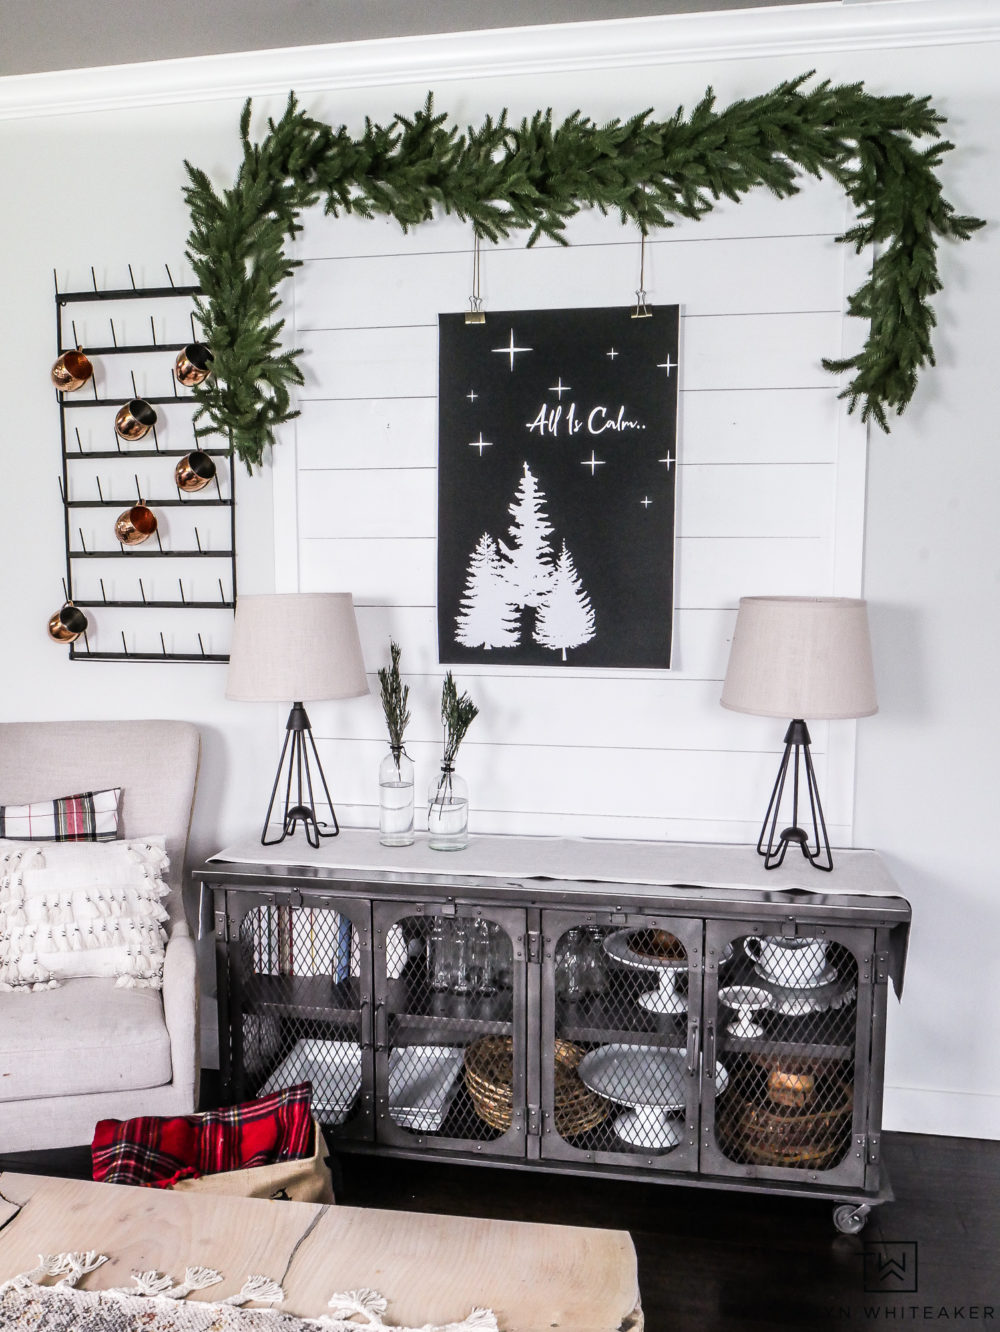 Black and White Christmas Display with pops of greenery and red! Grab your free Christmas print for your own space.